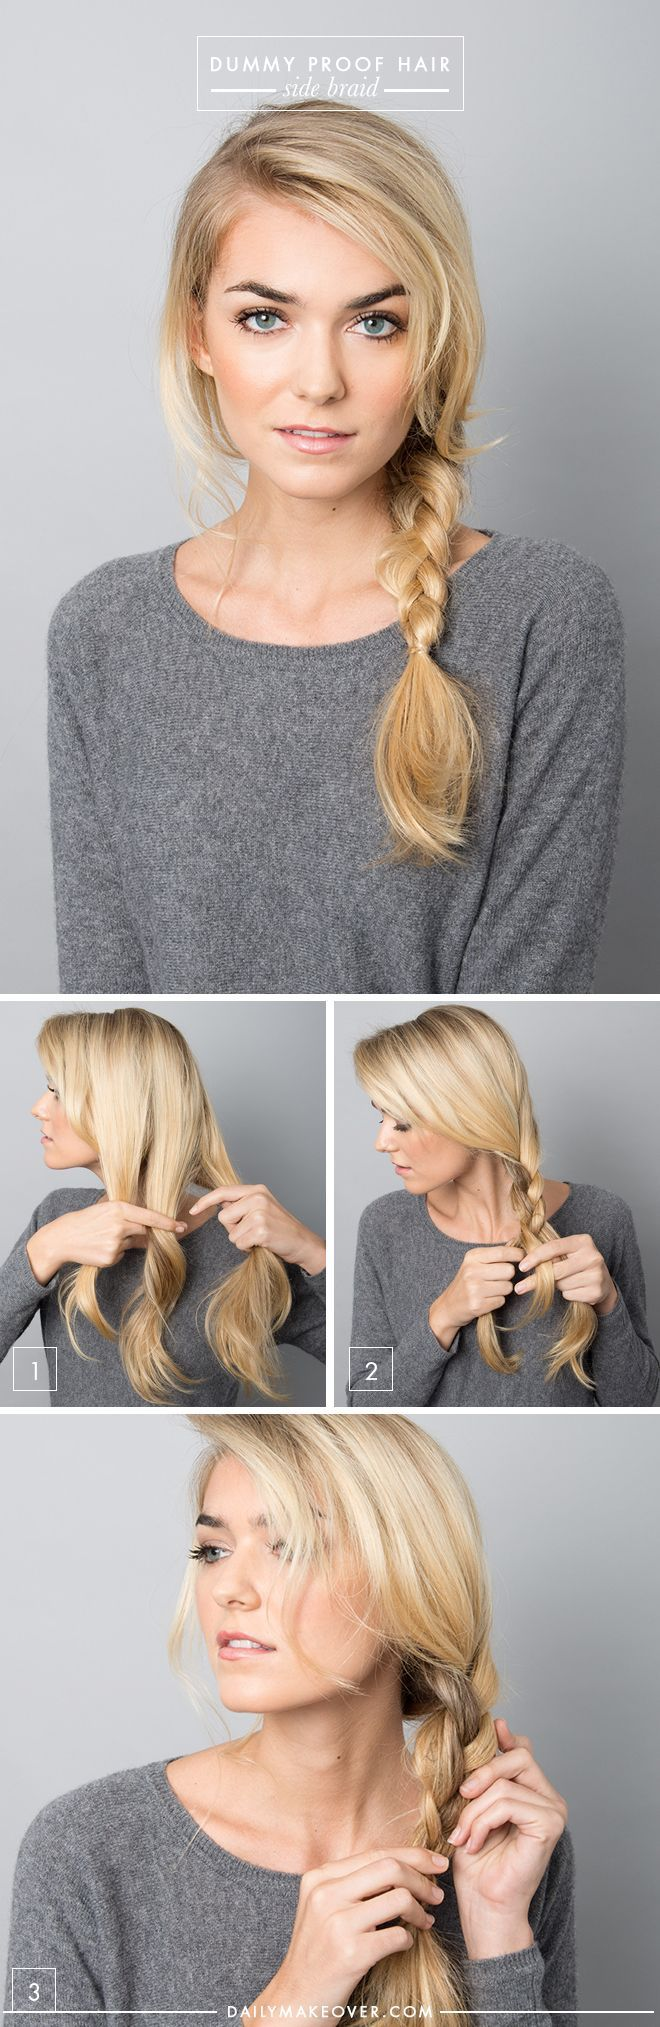 5 Dummy Proof Hairstyles That Everyone Can Master Read more: www.dailymakeover.....